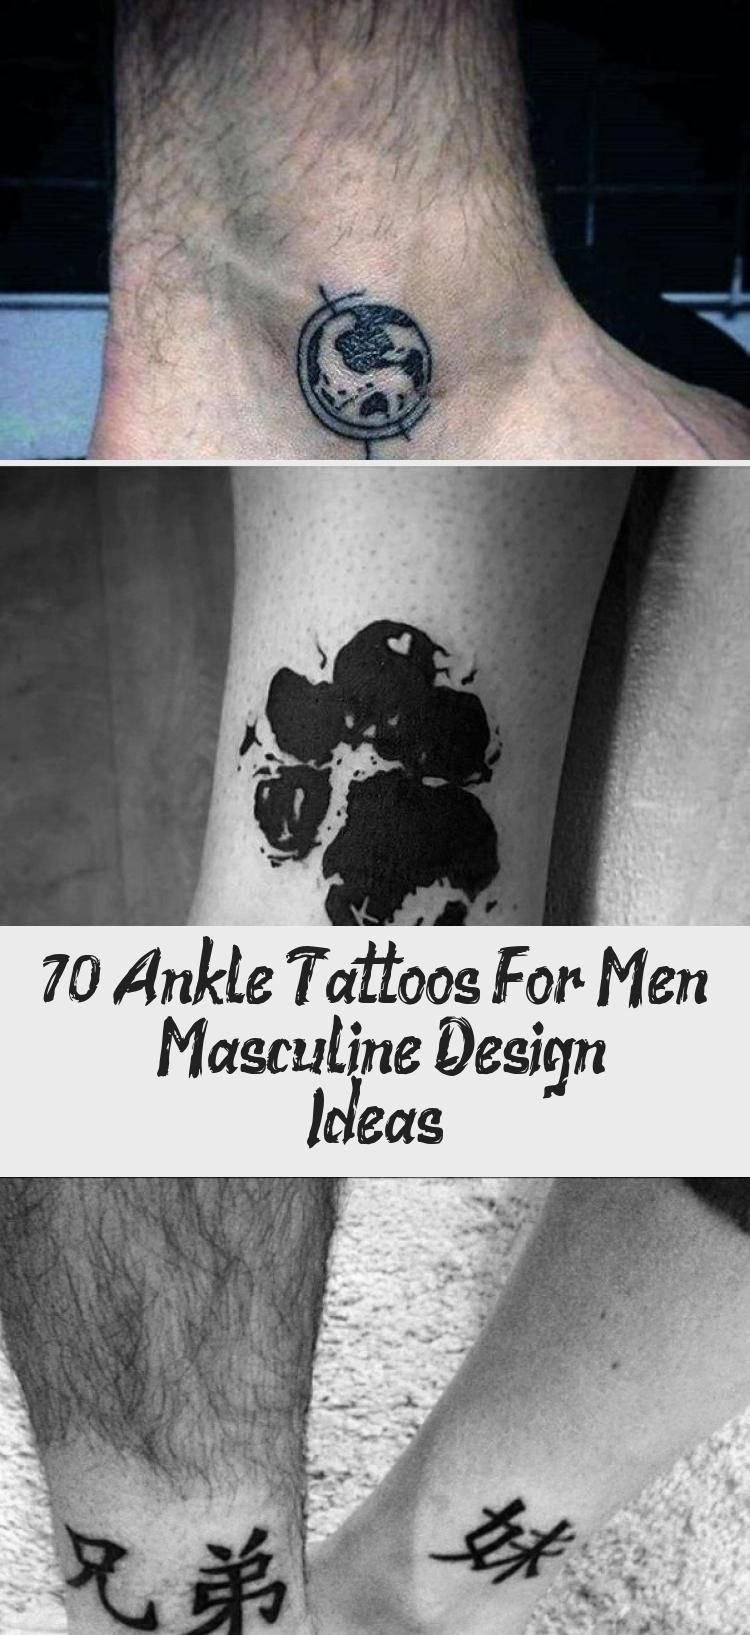 70 Ankle Tattoos For Men Masculine Design Ideas in 2020